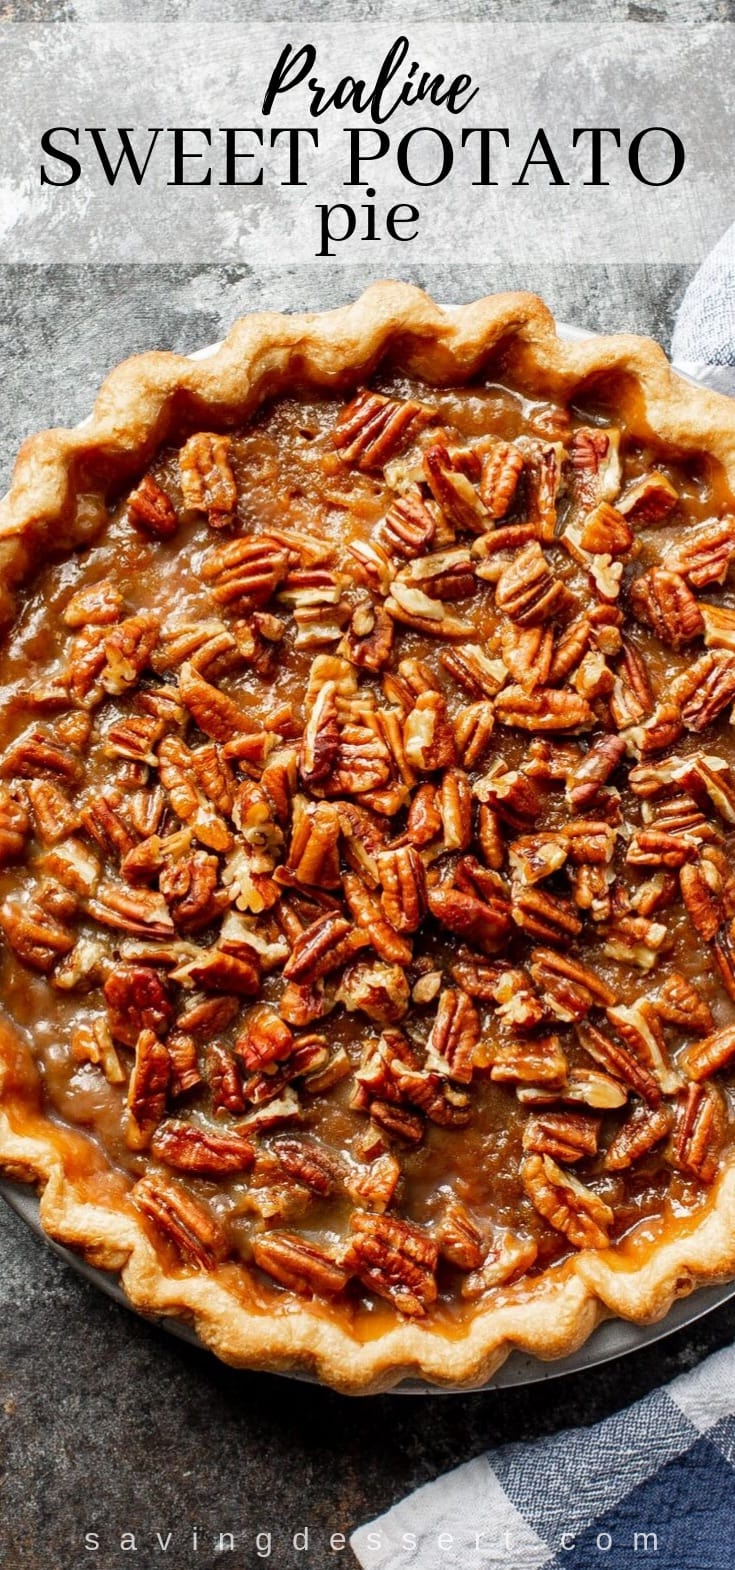 An overhead view of a Praline Sweet Potato Pie covered with pecans